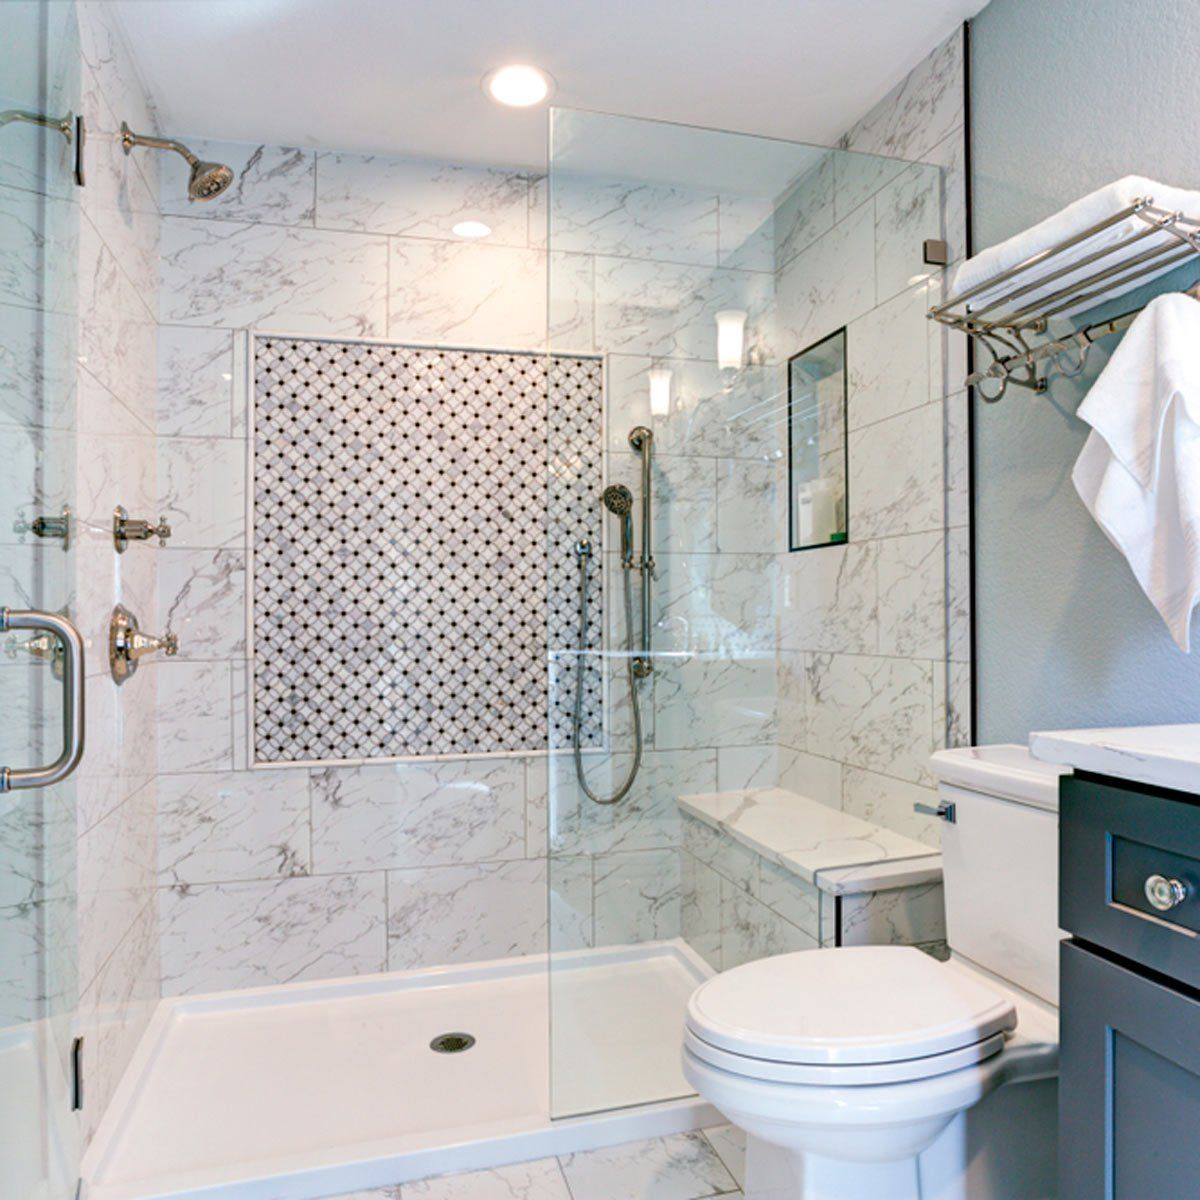 15 Remodeling Ideas That Will Pay Off In 2019 Bathrooms Remodel Bathroom Design Small Bathroom